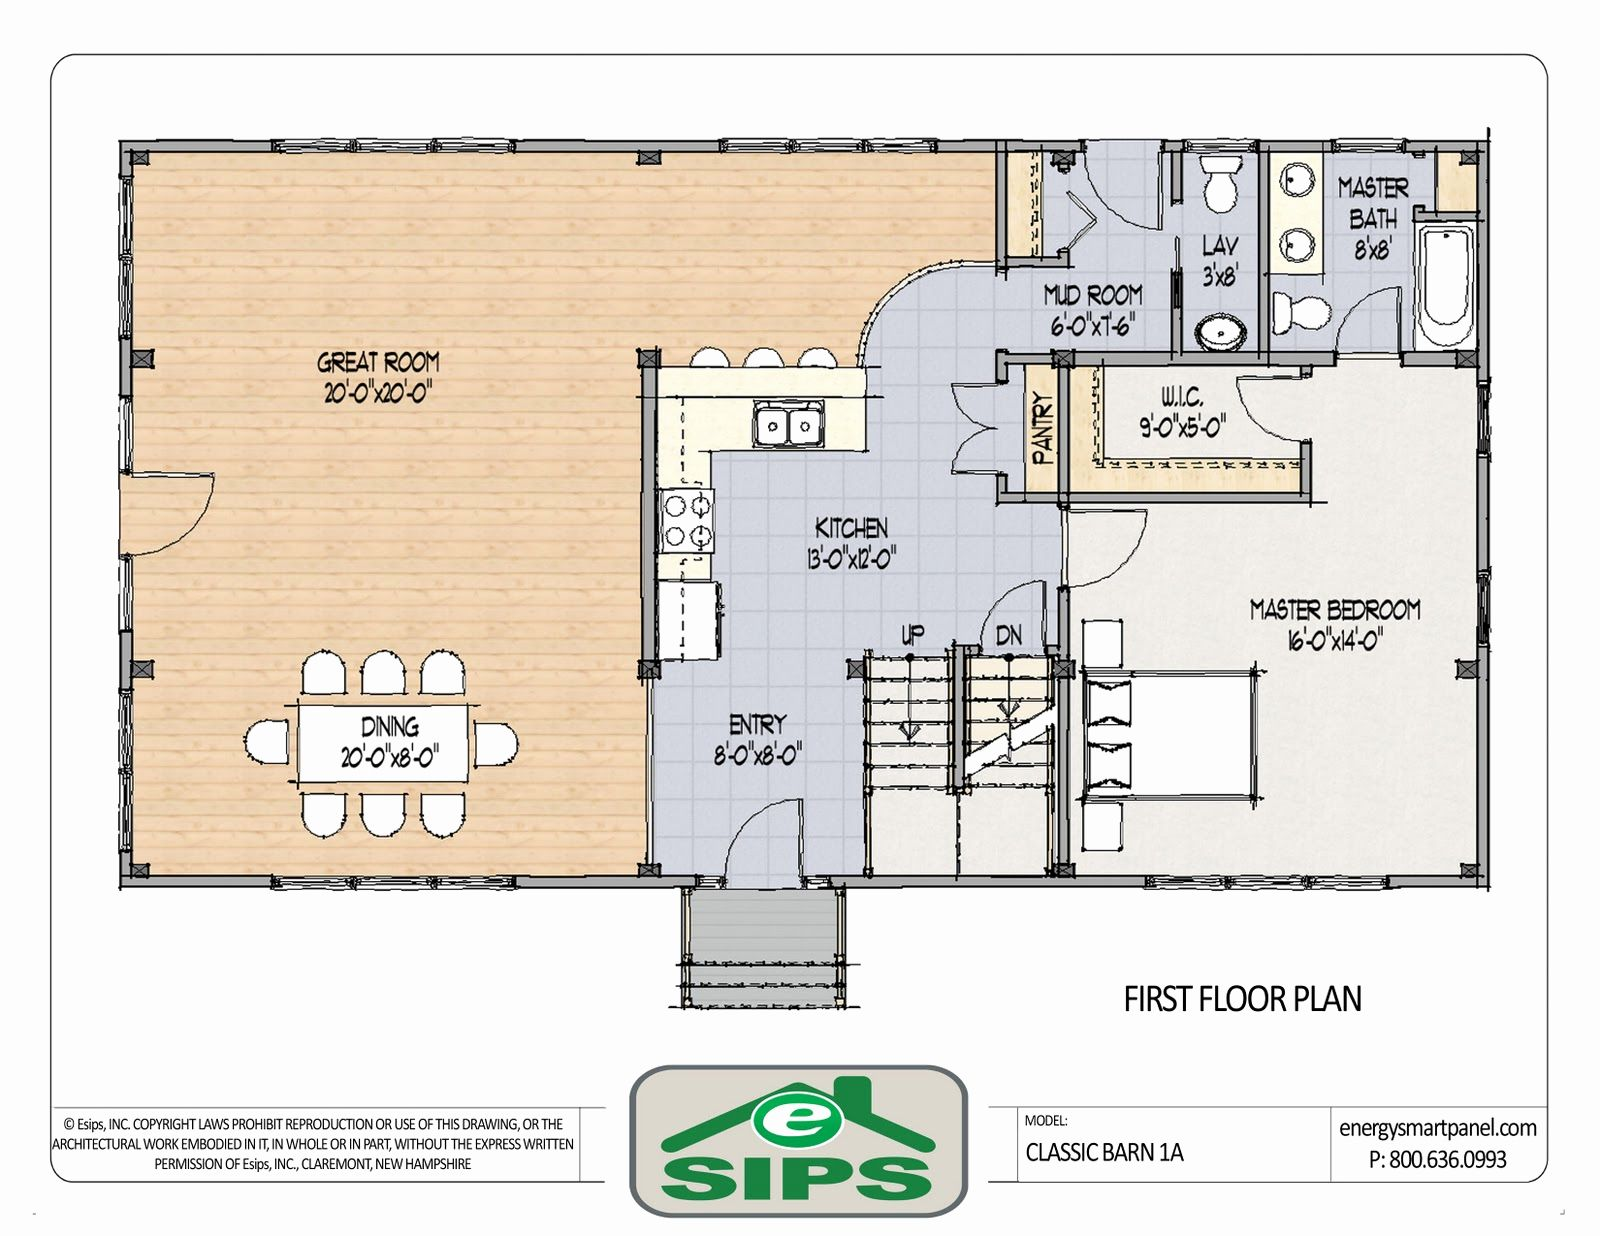 Are You Looking For Home Design Concepts If So This Board Is Perfect For You You Will Find The Bes Open Concept Floor Plans Floor Plans Building Plans House